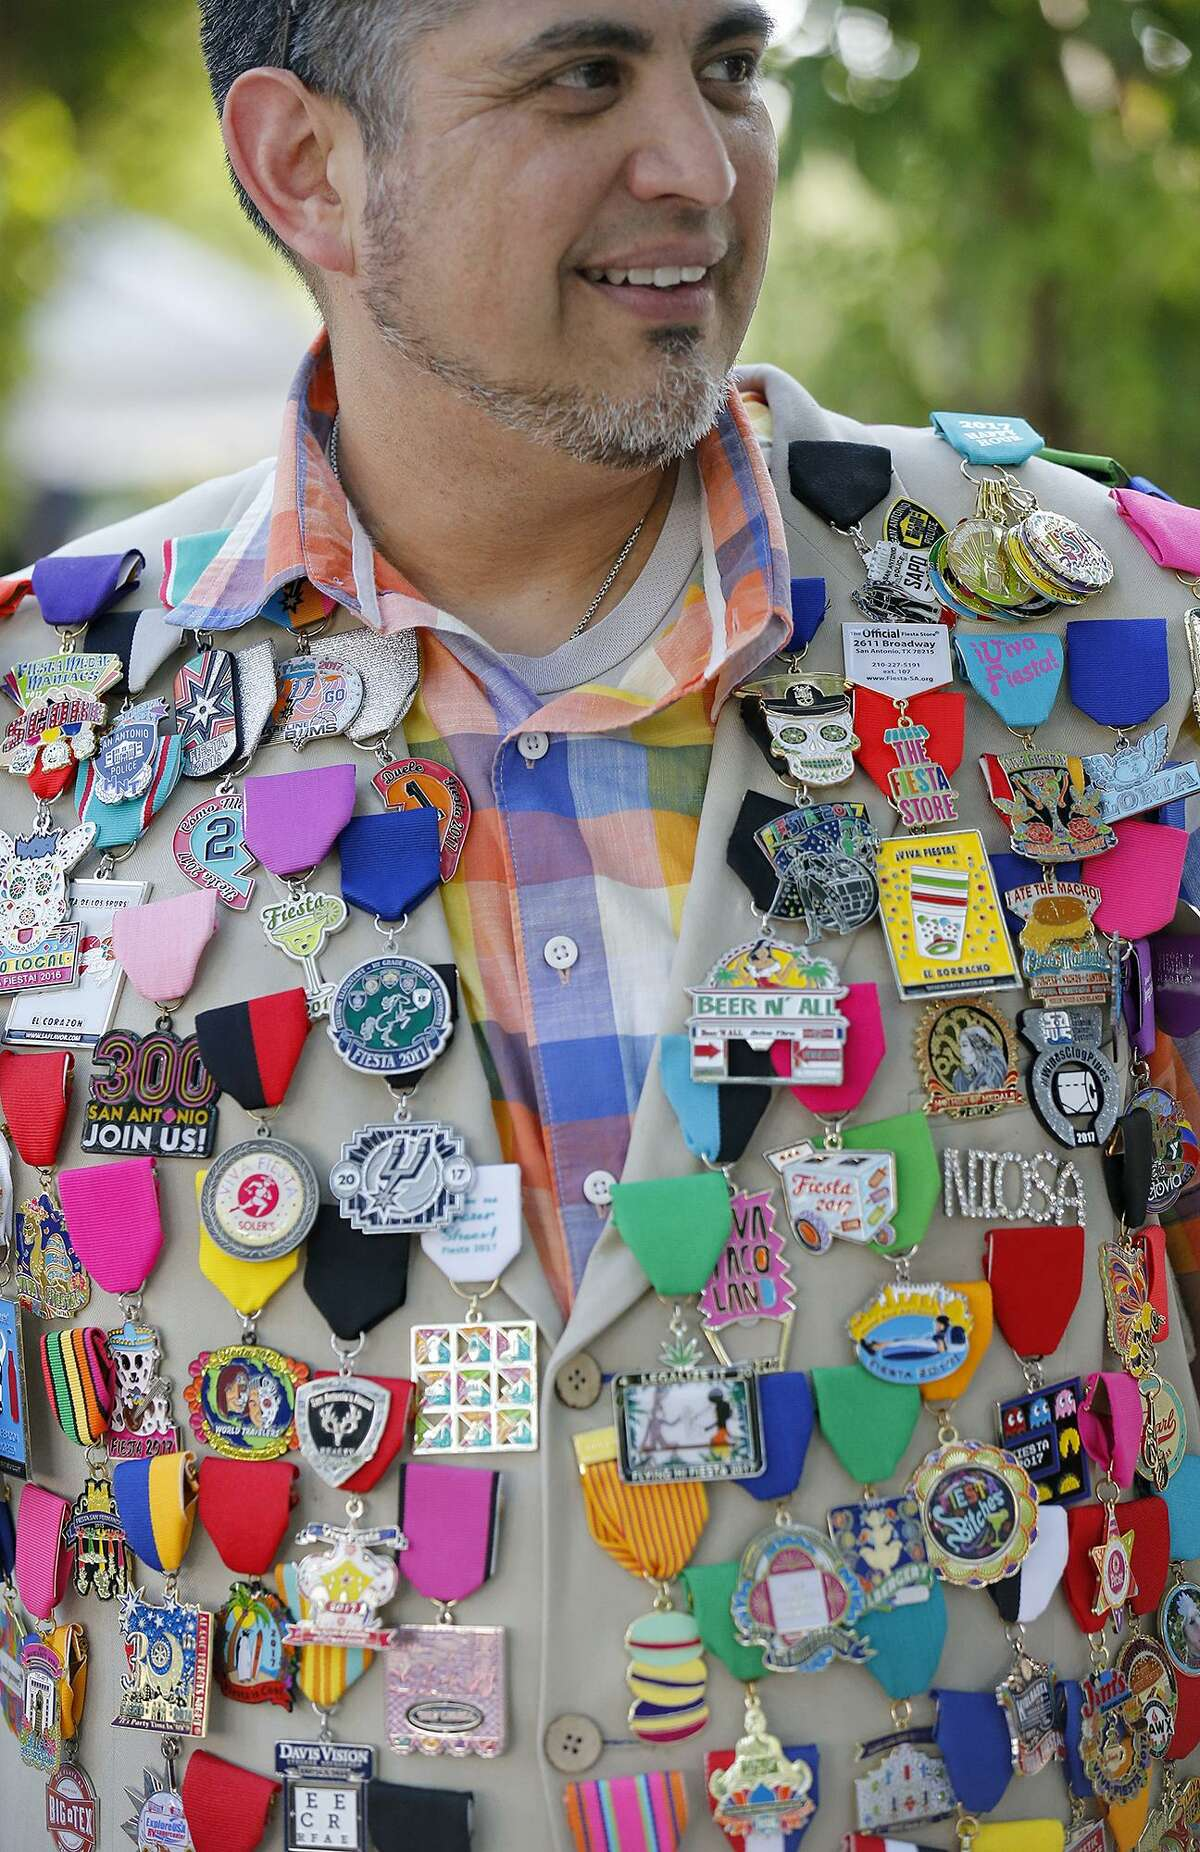 Buddy Sanchez wears medals on his vest during the Fiesta Fiesta event in 2017 at Hemisfair Park.